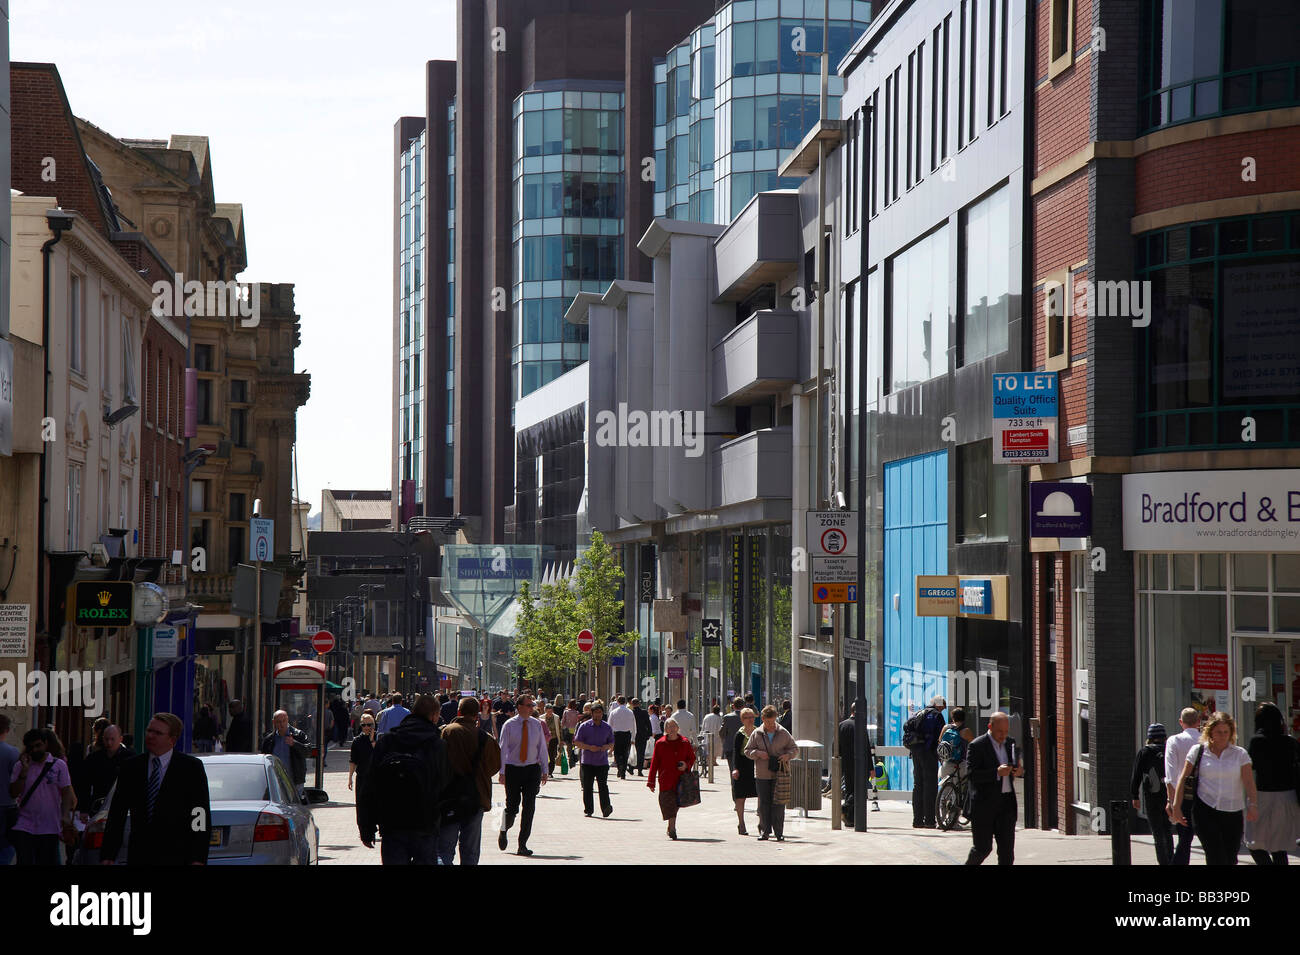 Albion Street, Leeds City Centre, Northern England - Stock Image